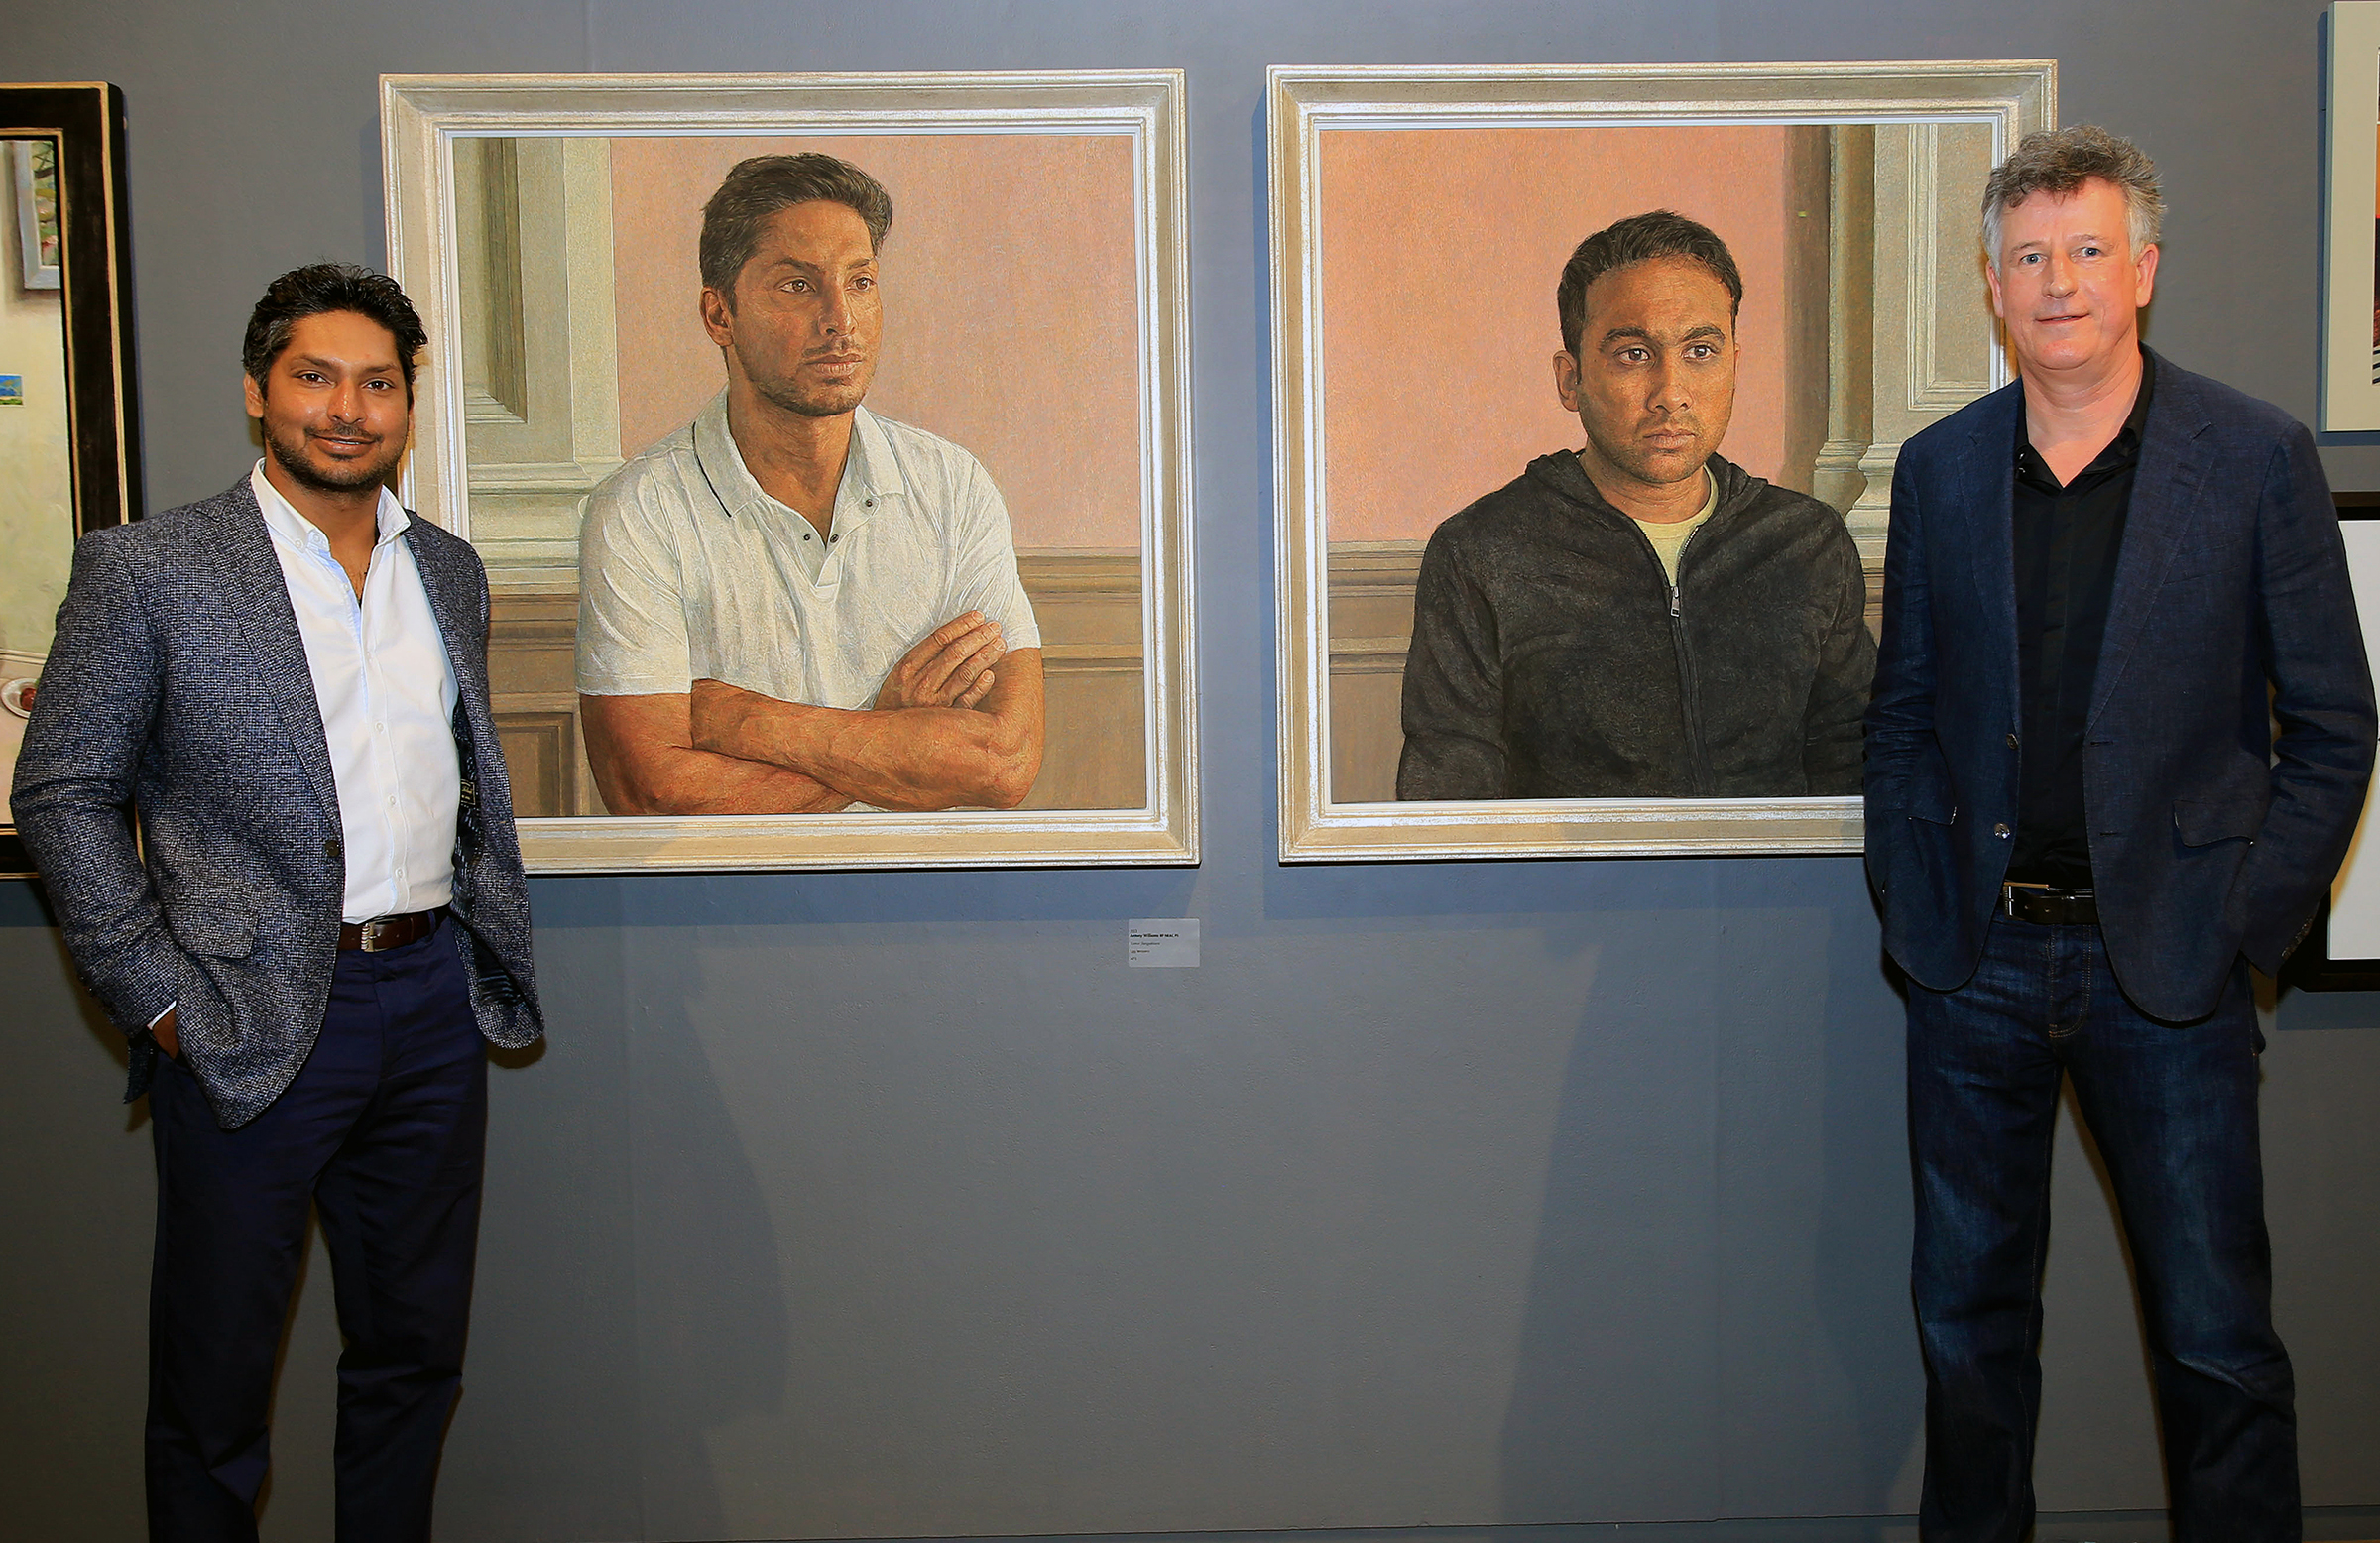 Subject and artist stand next to the portraits // MCC